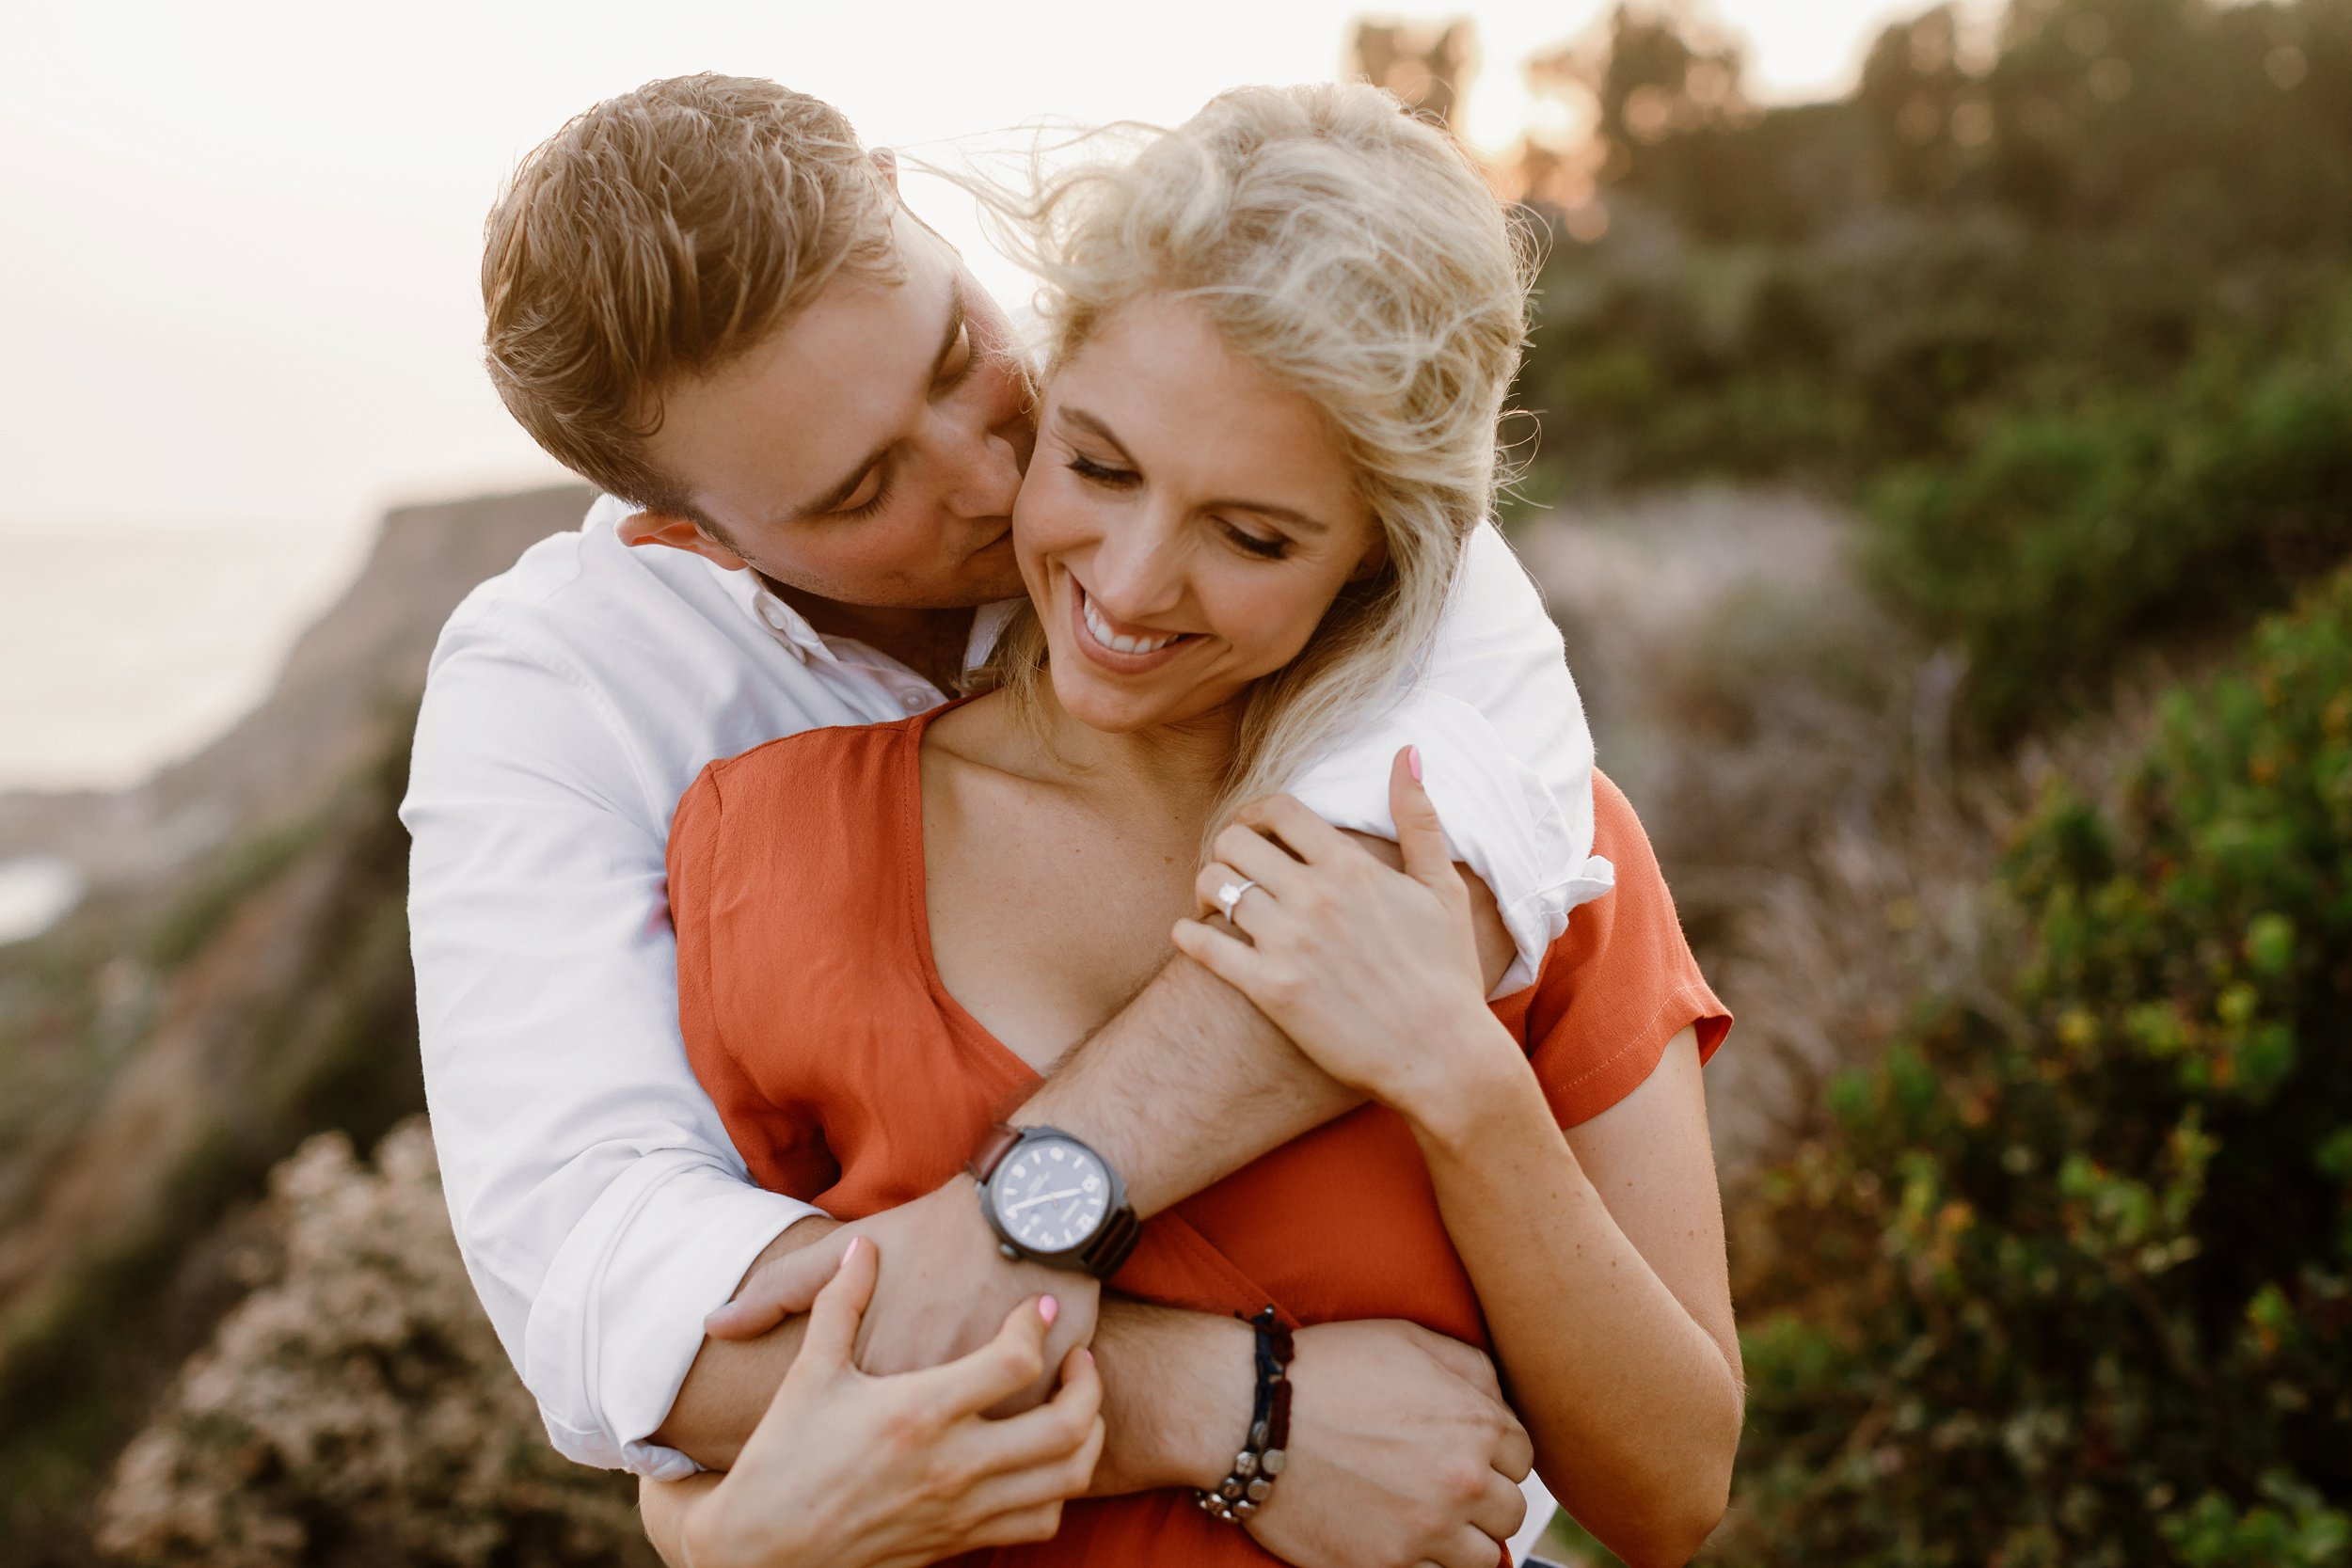 Malibu California Engagement Session_0021.jpg